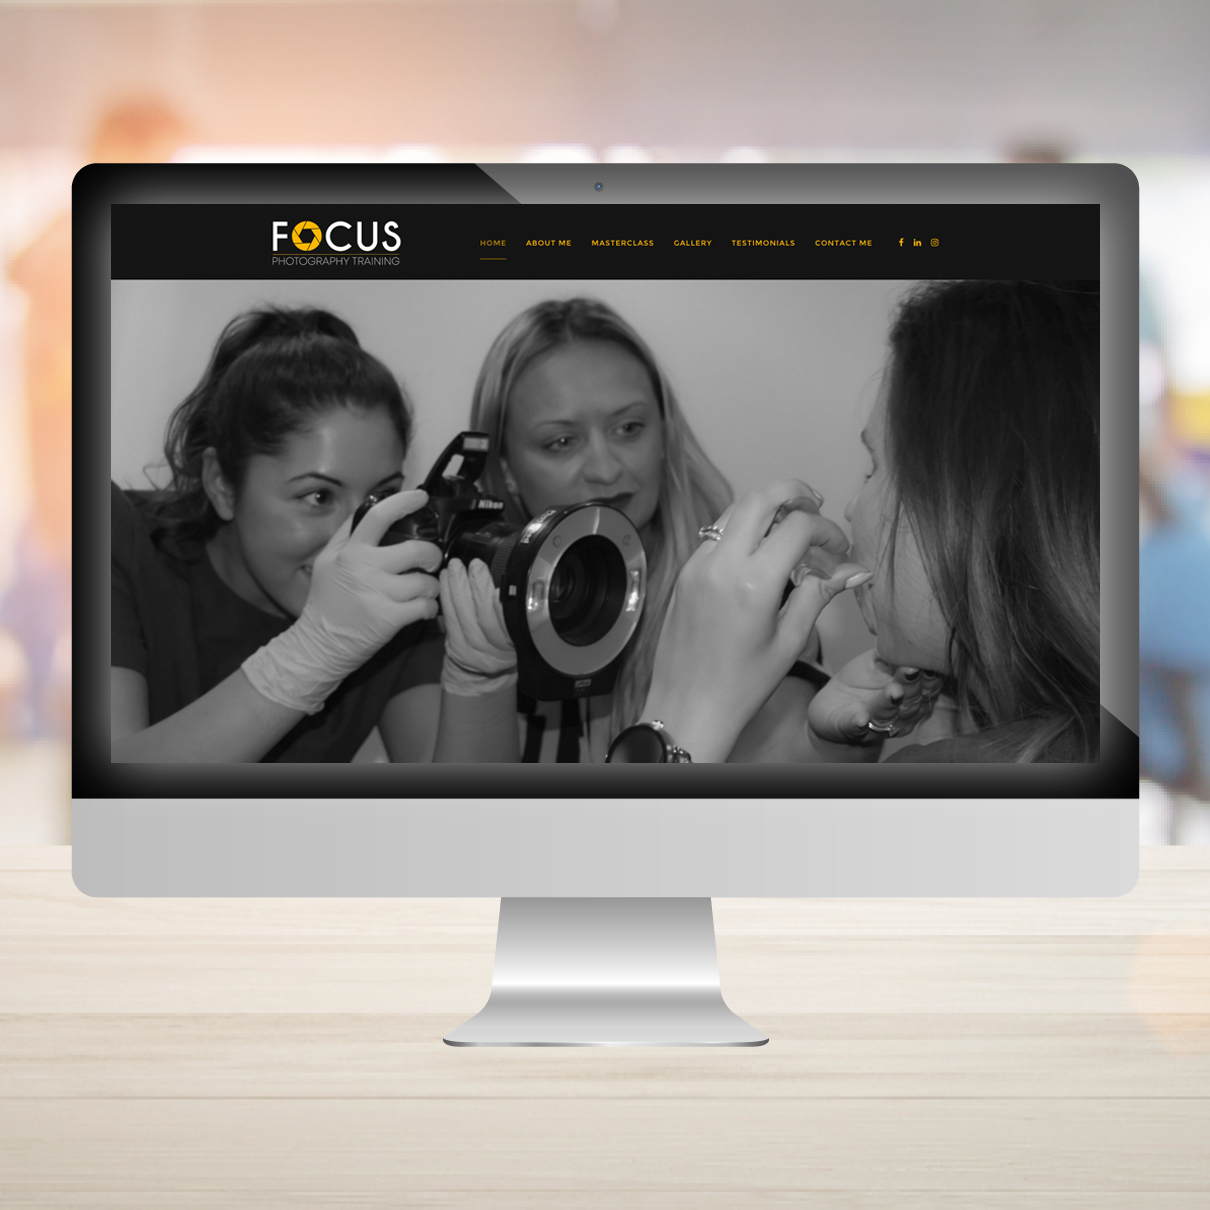 Focus-Photography-Site-Mac